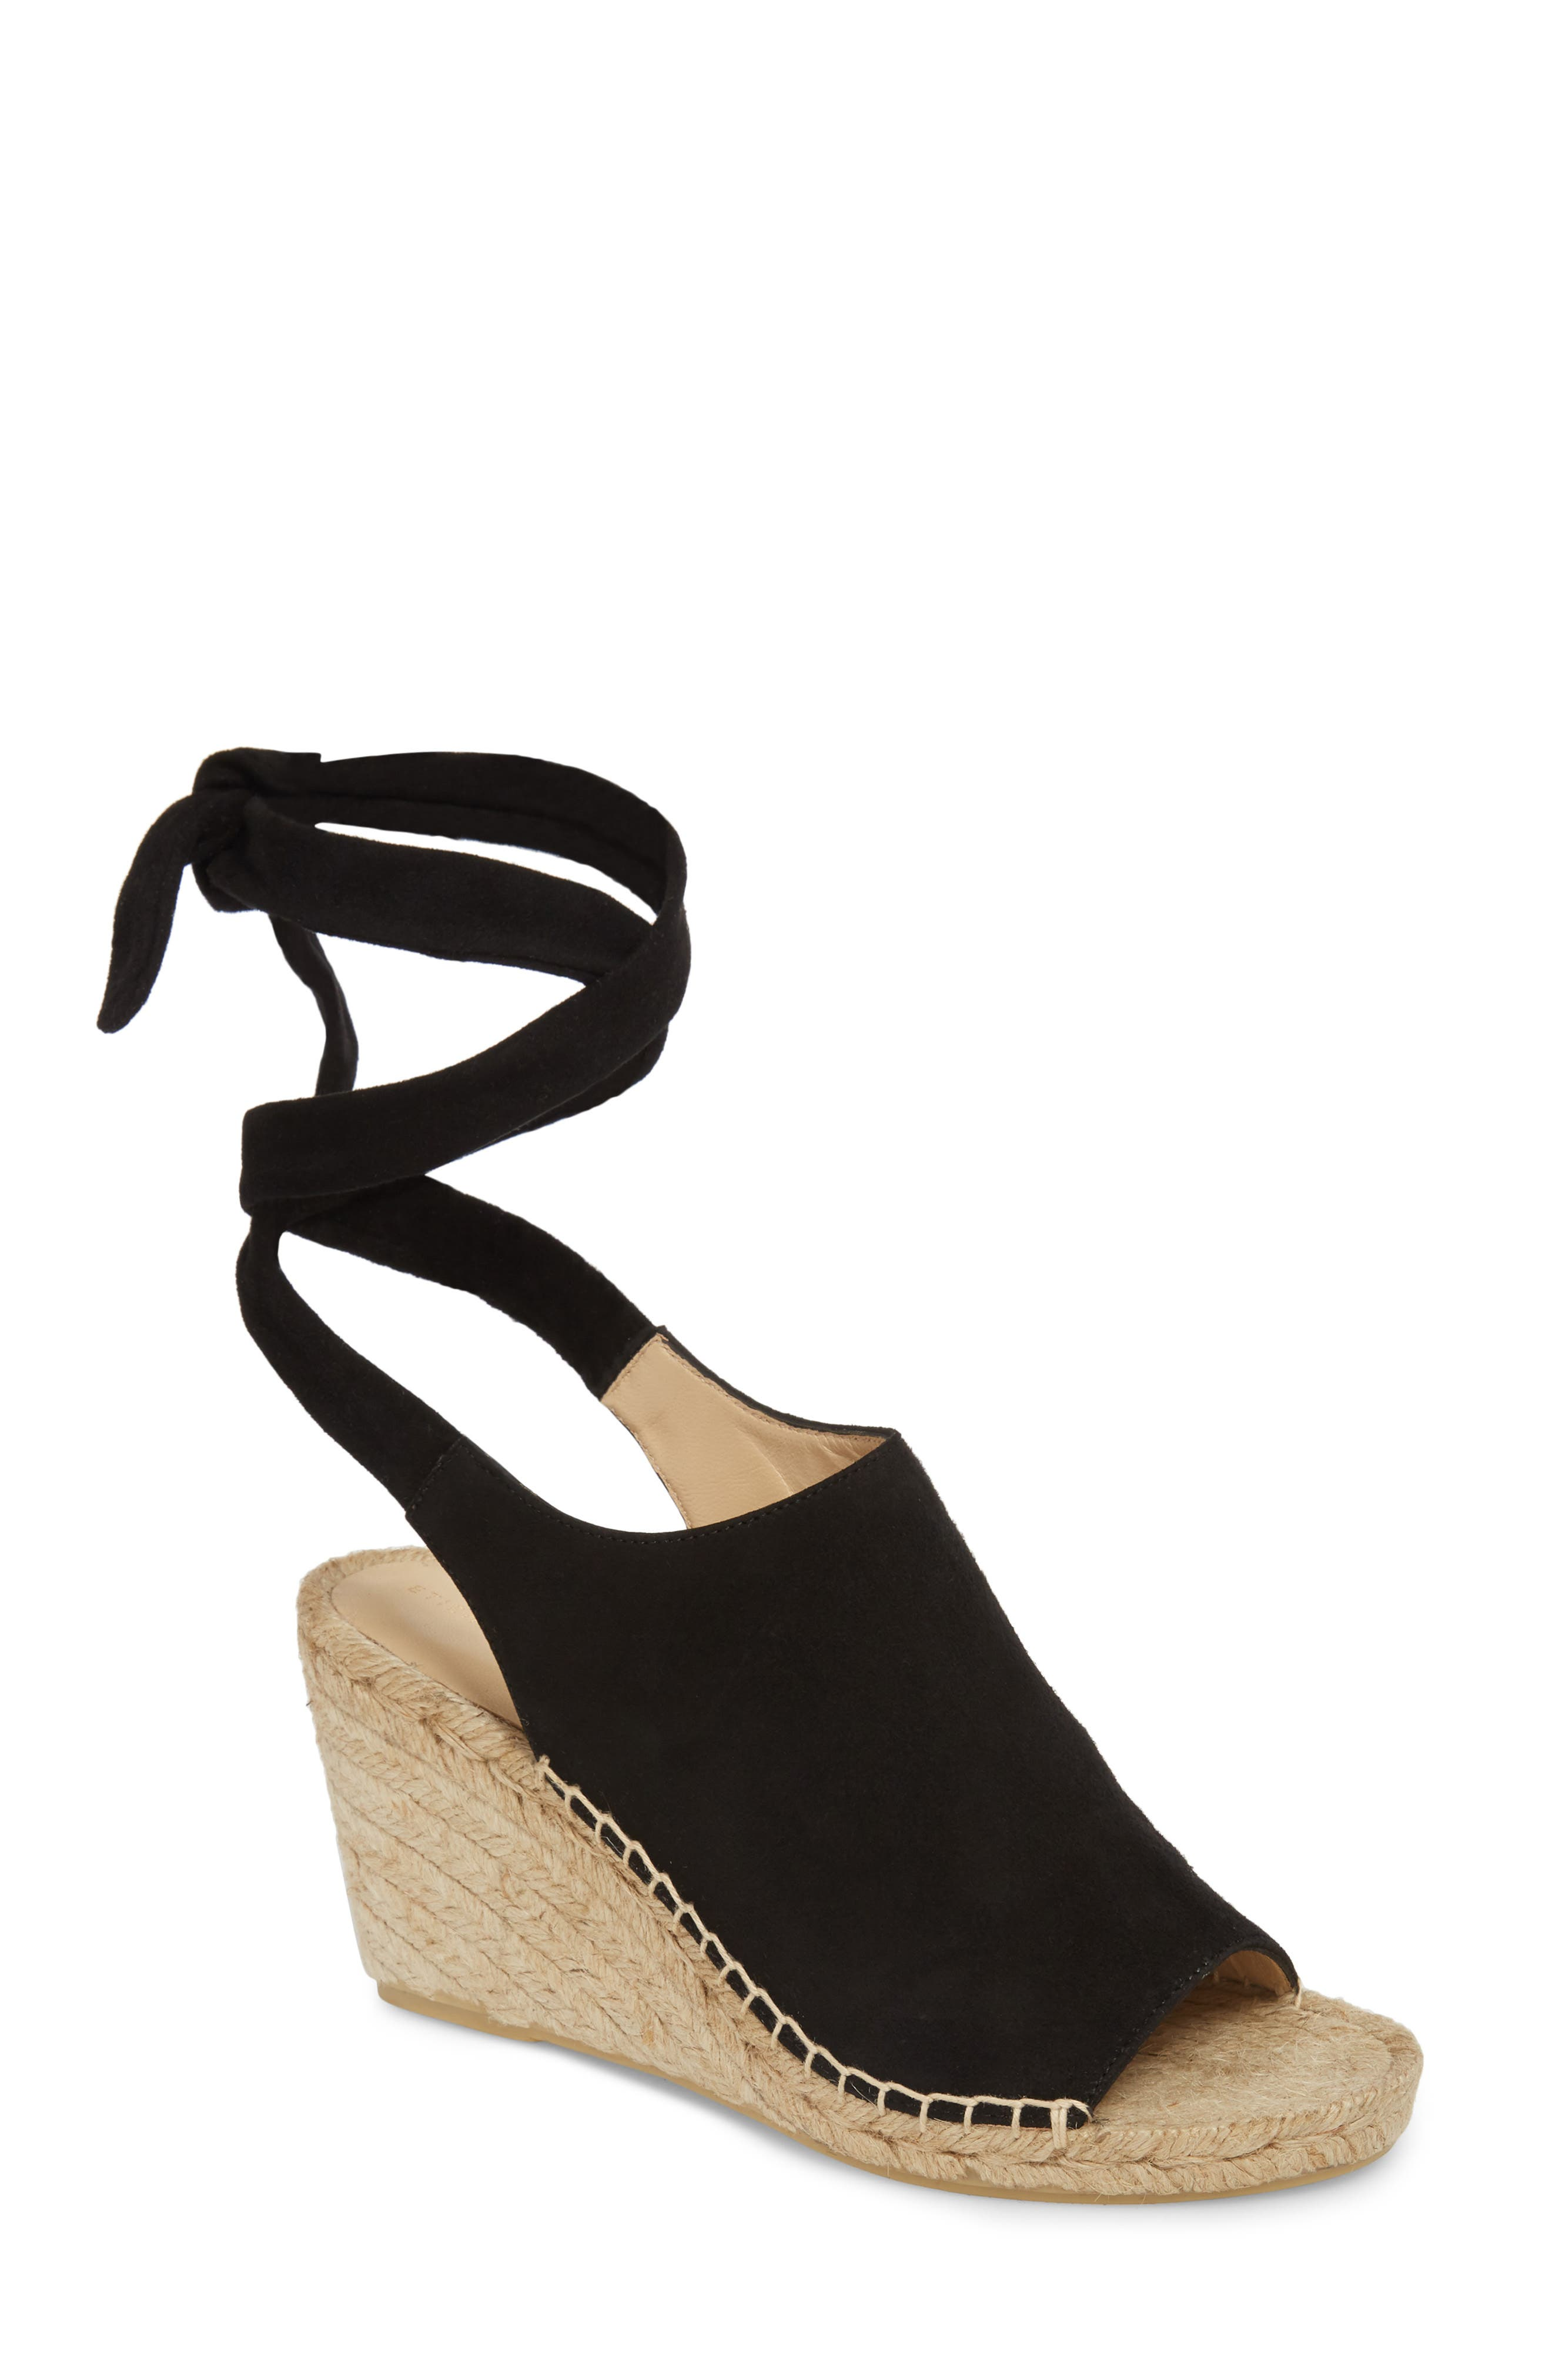 Vie Espadrille Wedge Sandal,                             Main thumbnail 1, color,                             BLACK SUEDE